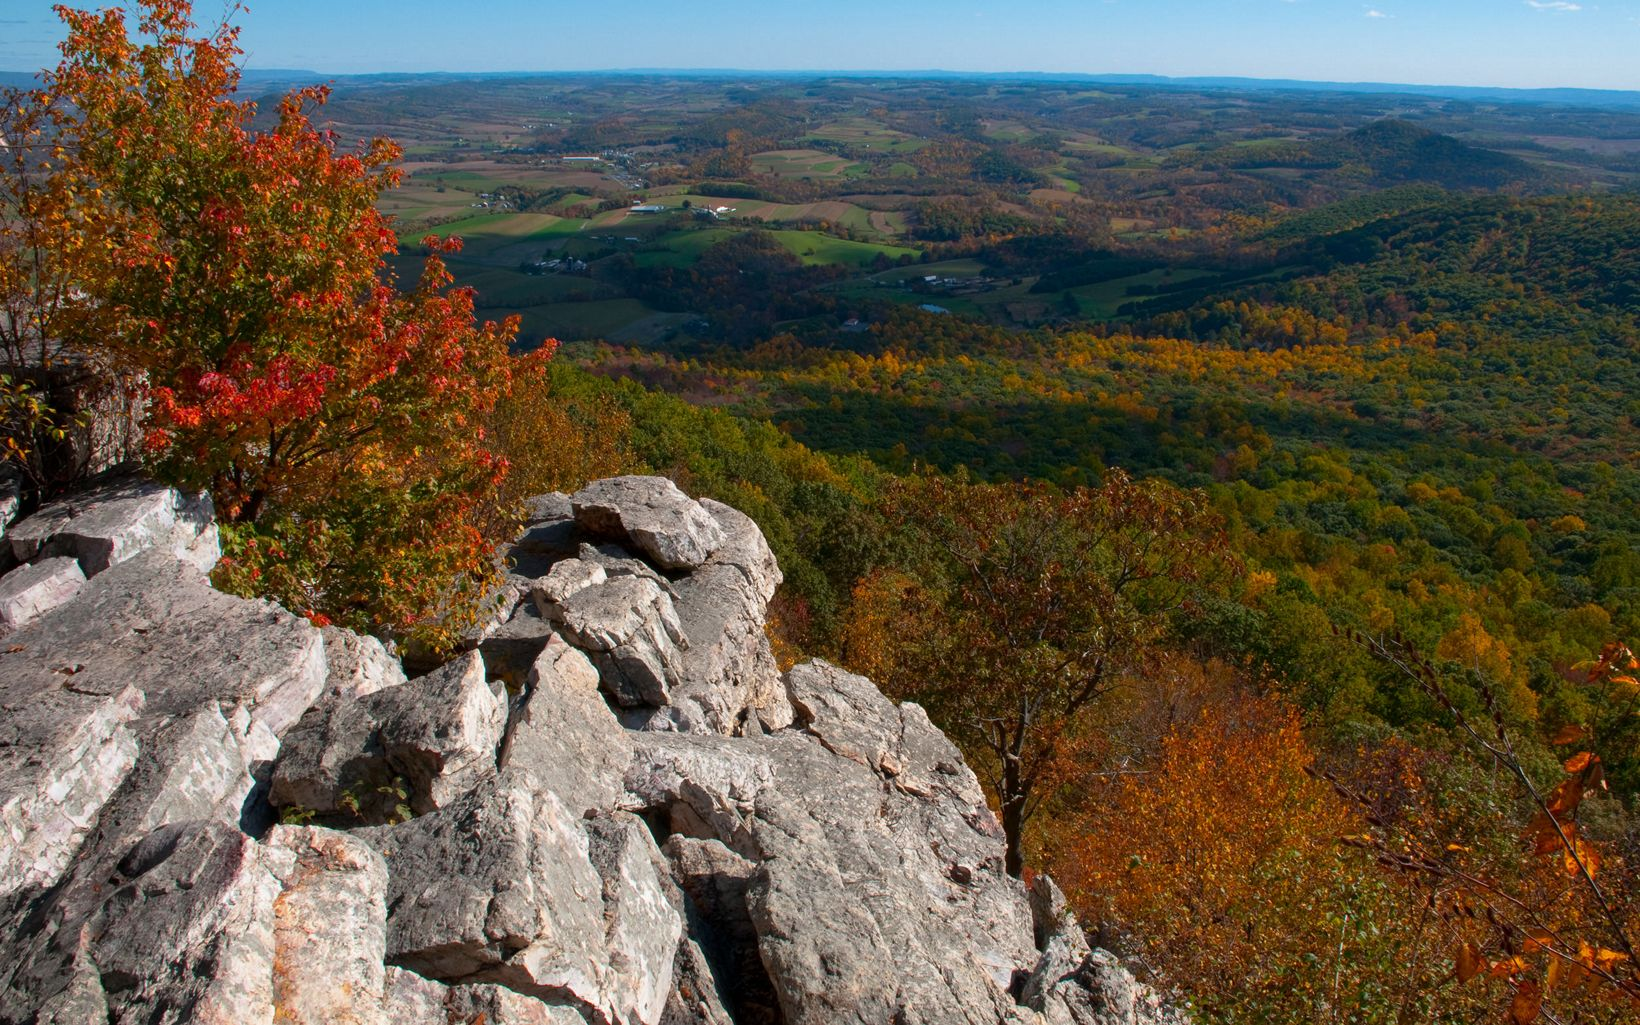 A valley view from a rocky outcrop on the Kittatinny Ridge